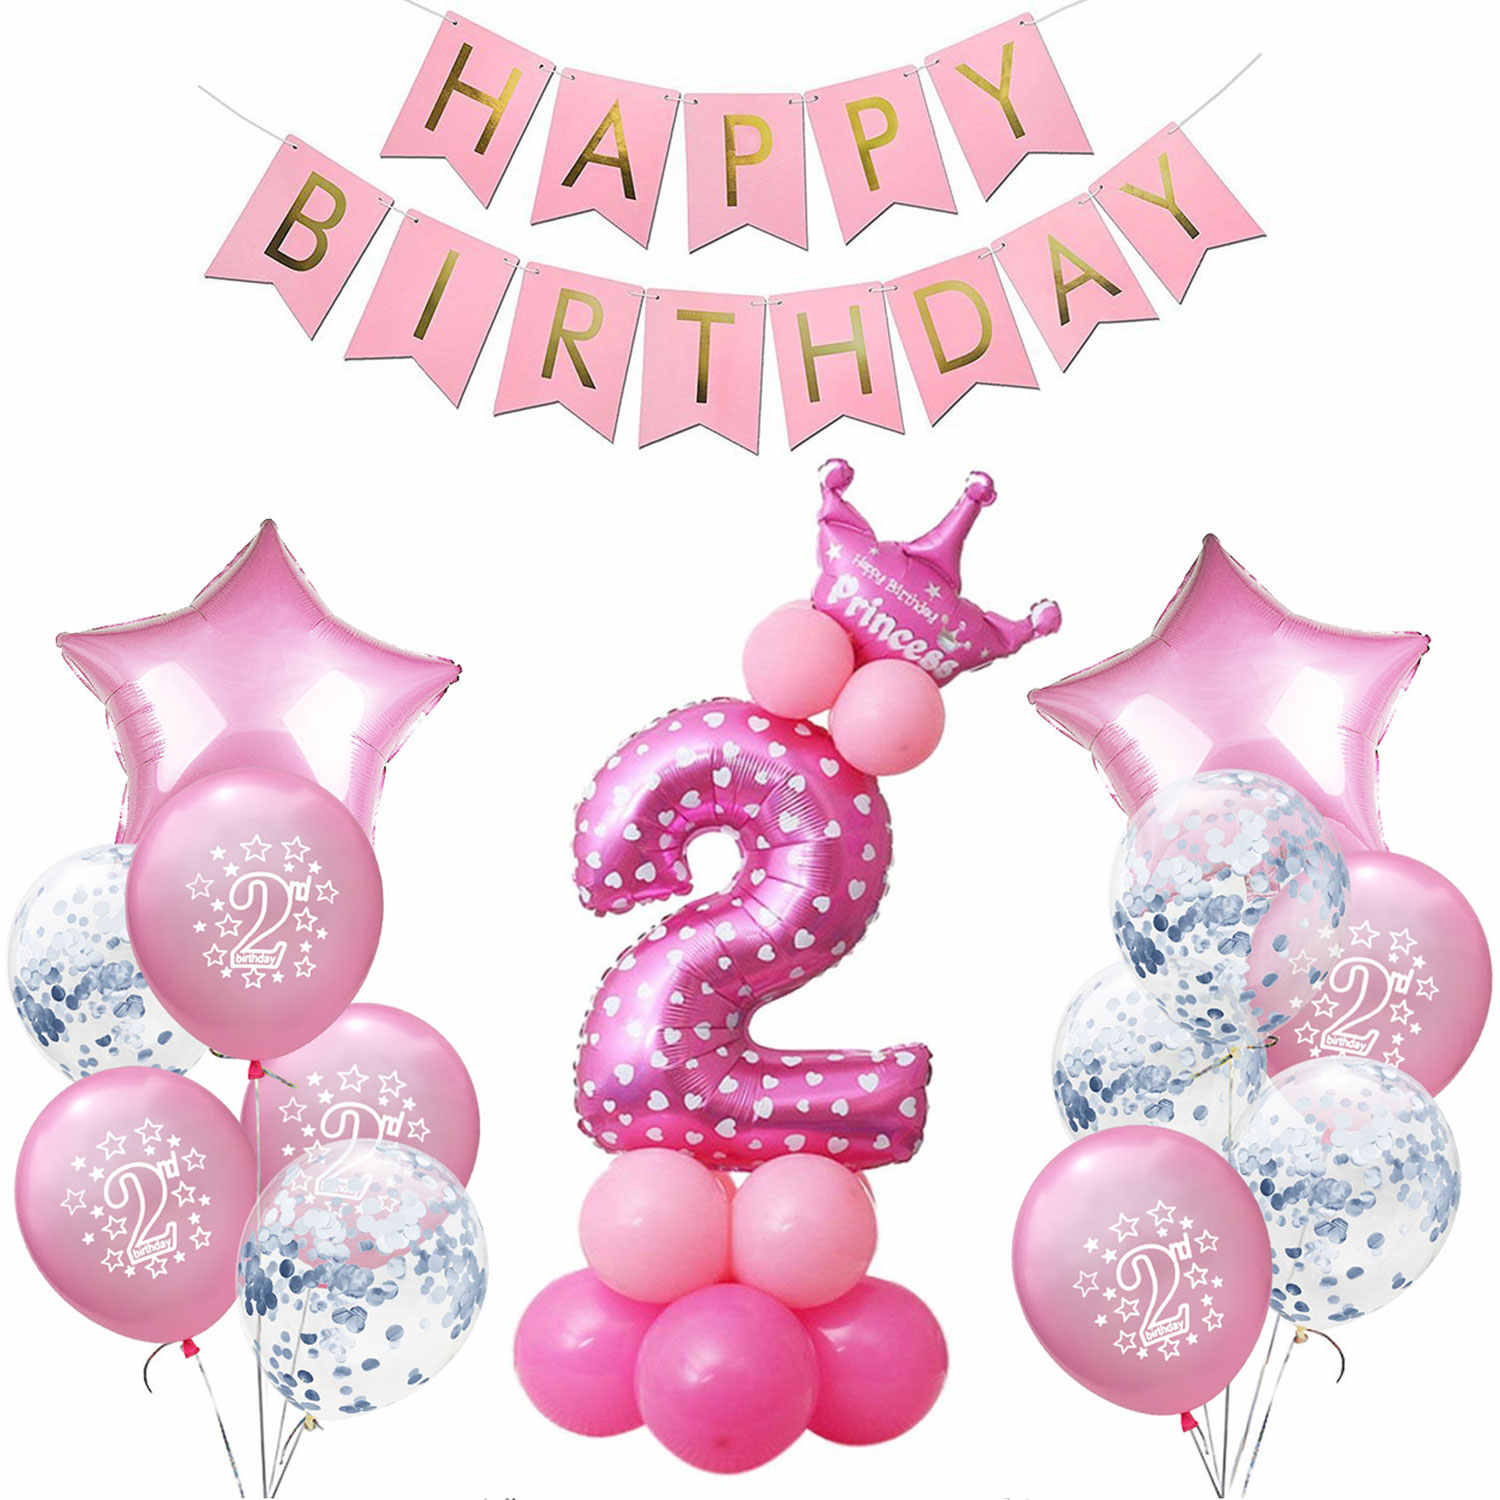 Amawill Birthday Decoration Girl Pink Confetti Balloon Baby 2nd Party Decor Hot Pompoms For 2 Year Old Shower